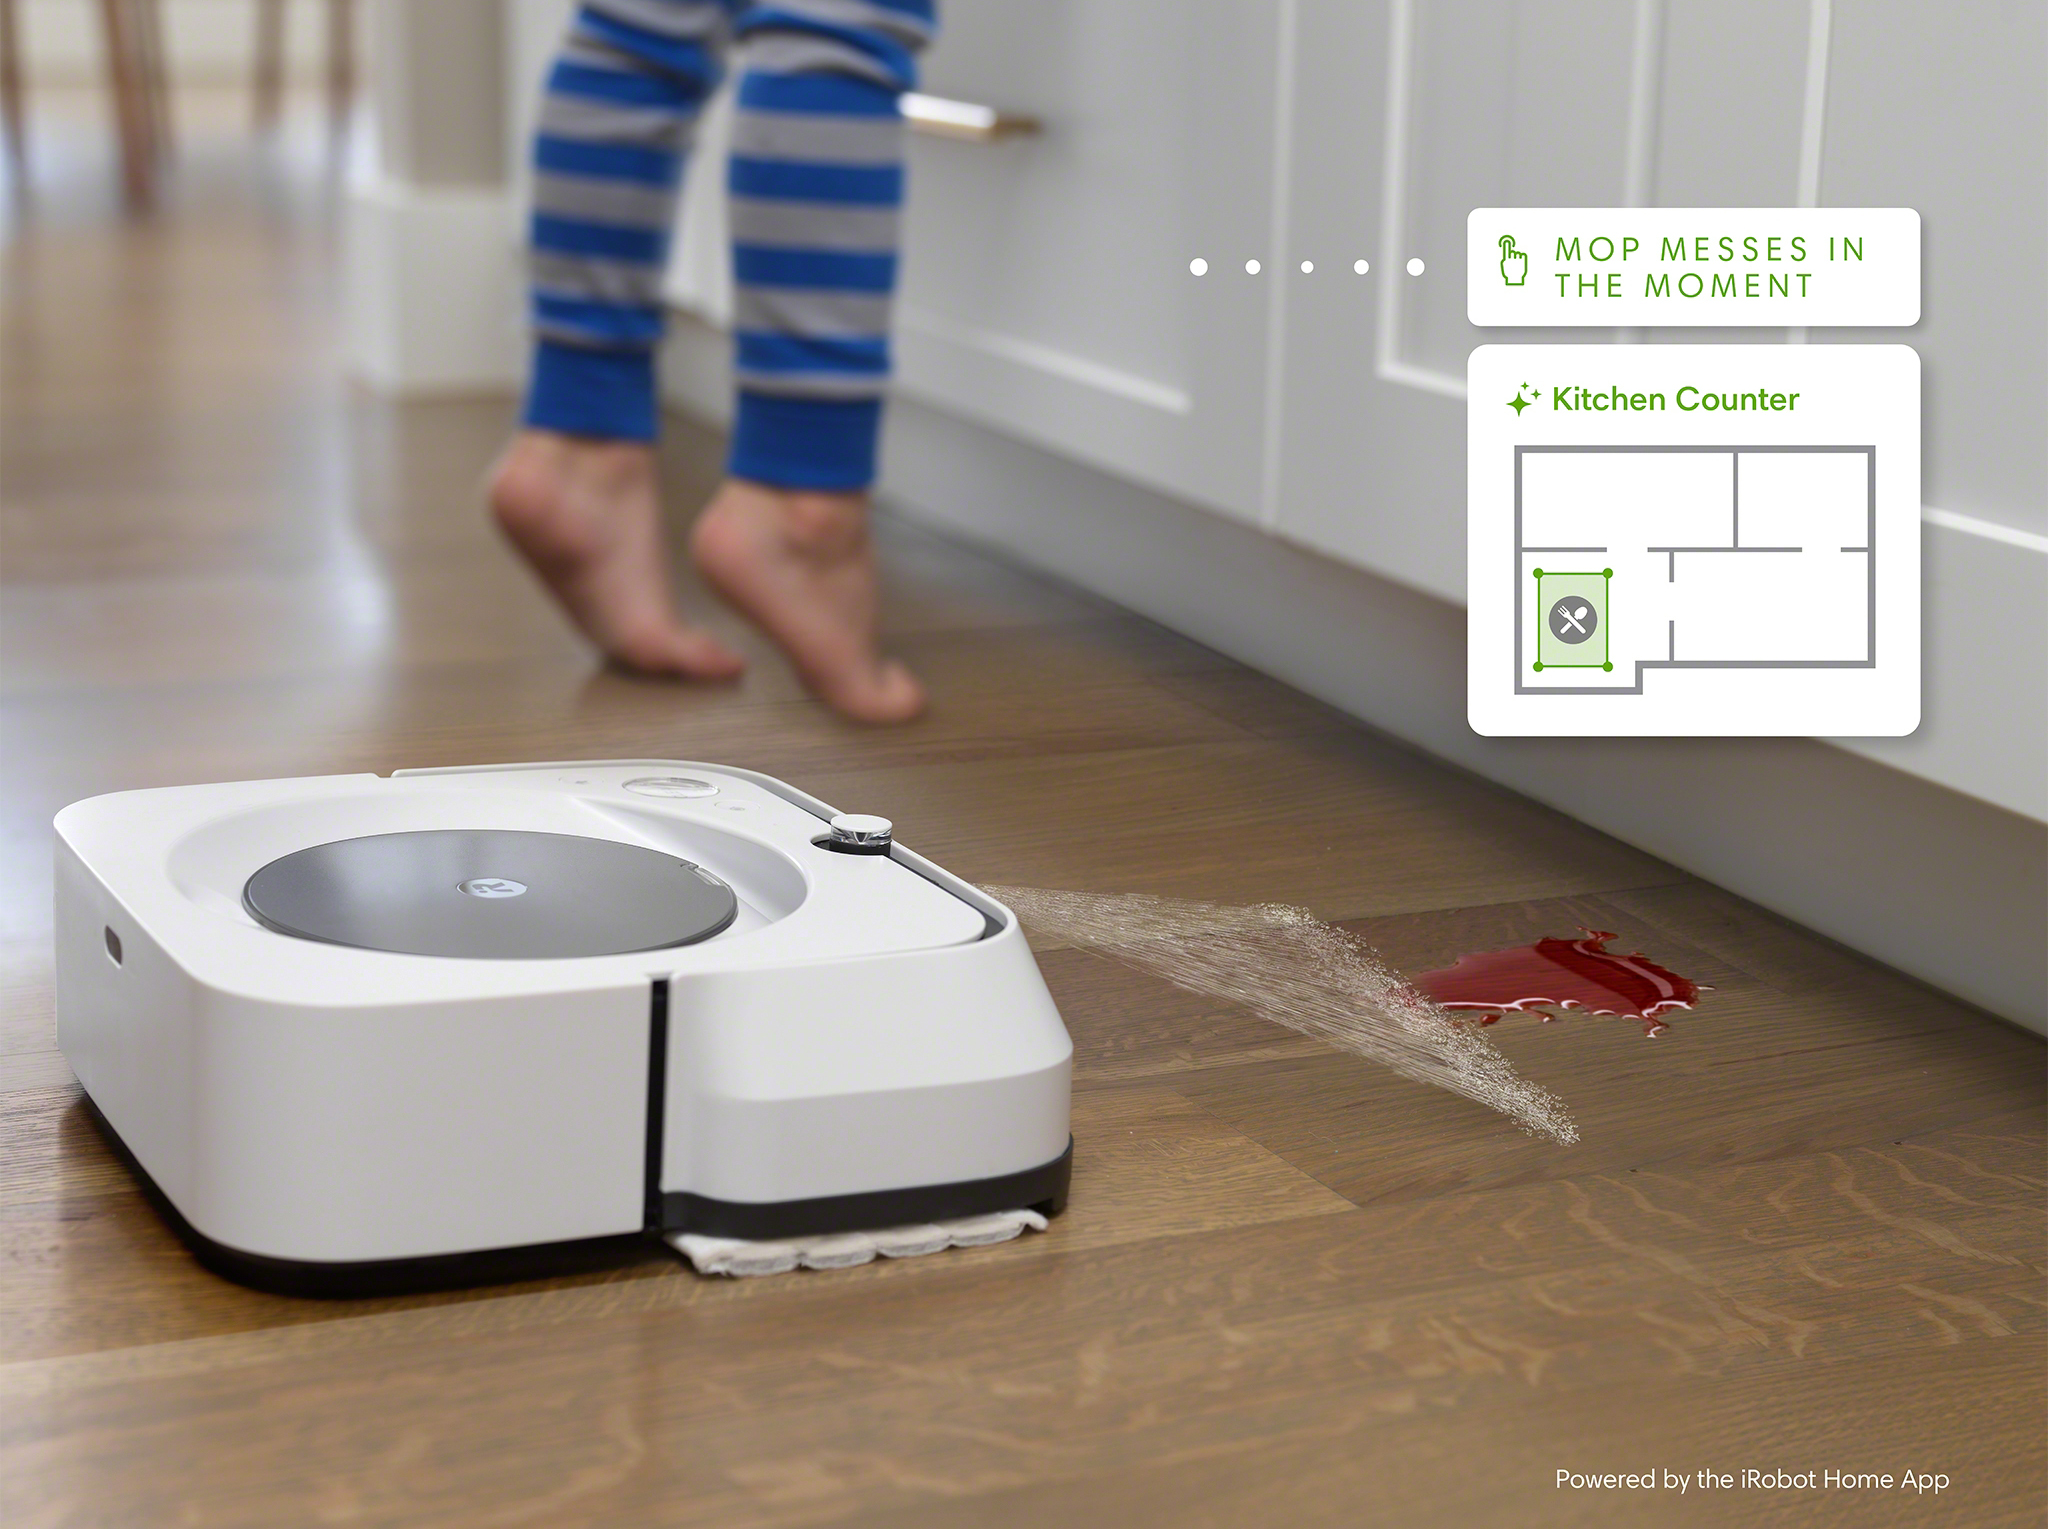 Send your Roomba robot vacuum or Braava jet robot mop to clean a mess right where it happens with precision Clean Zones. Roomba robot vacuums and Braava robot mops with Imprint™ Smart Mapping can automatically detect and proactively suggest Clean Zones around specific objects, like kitchen counters.